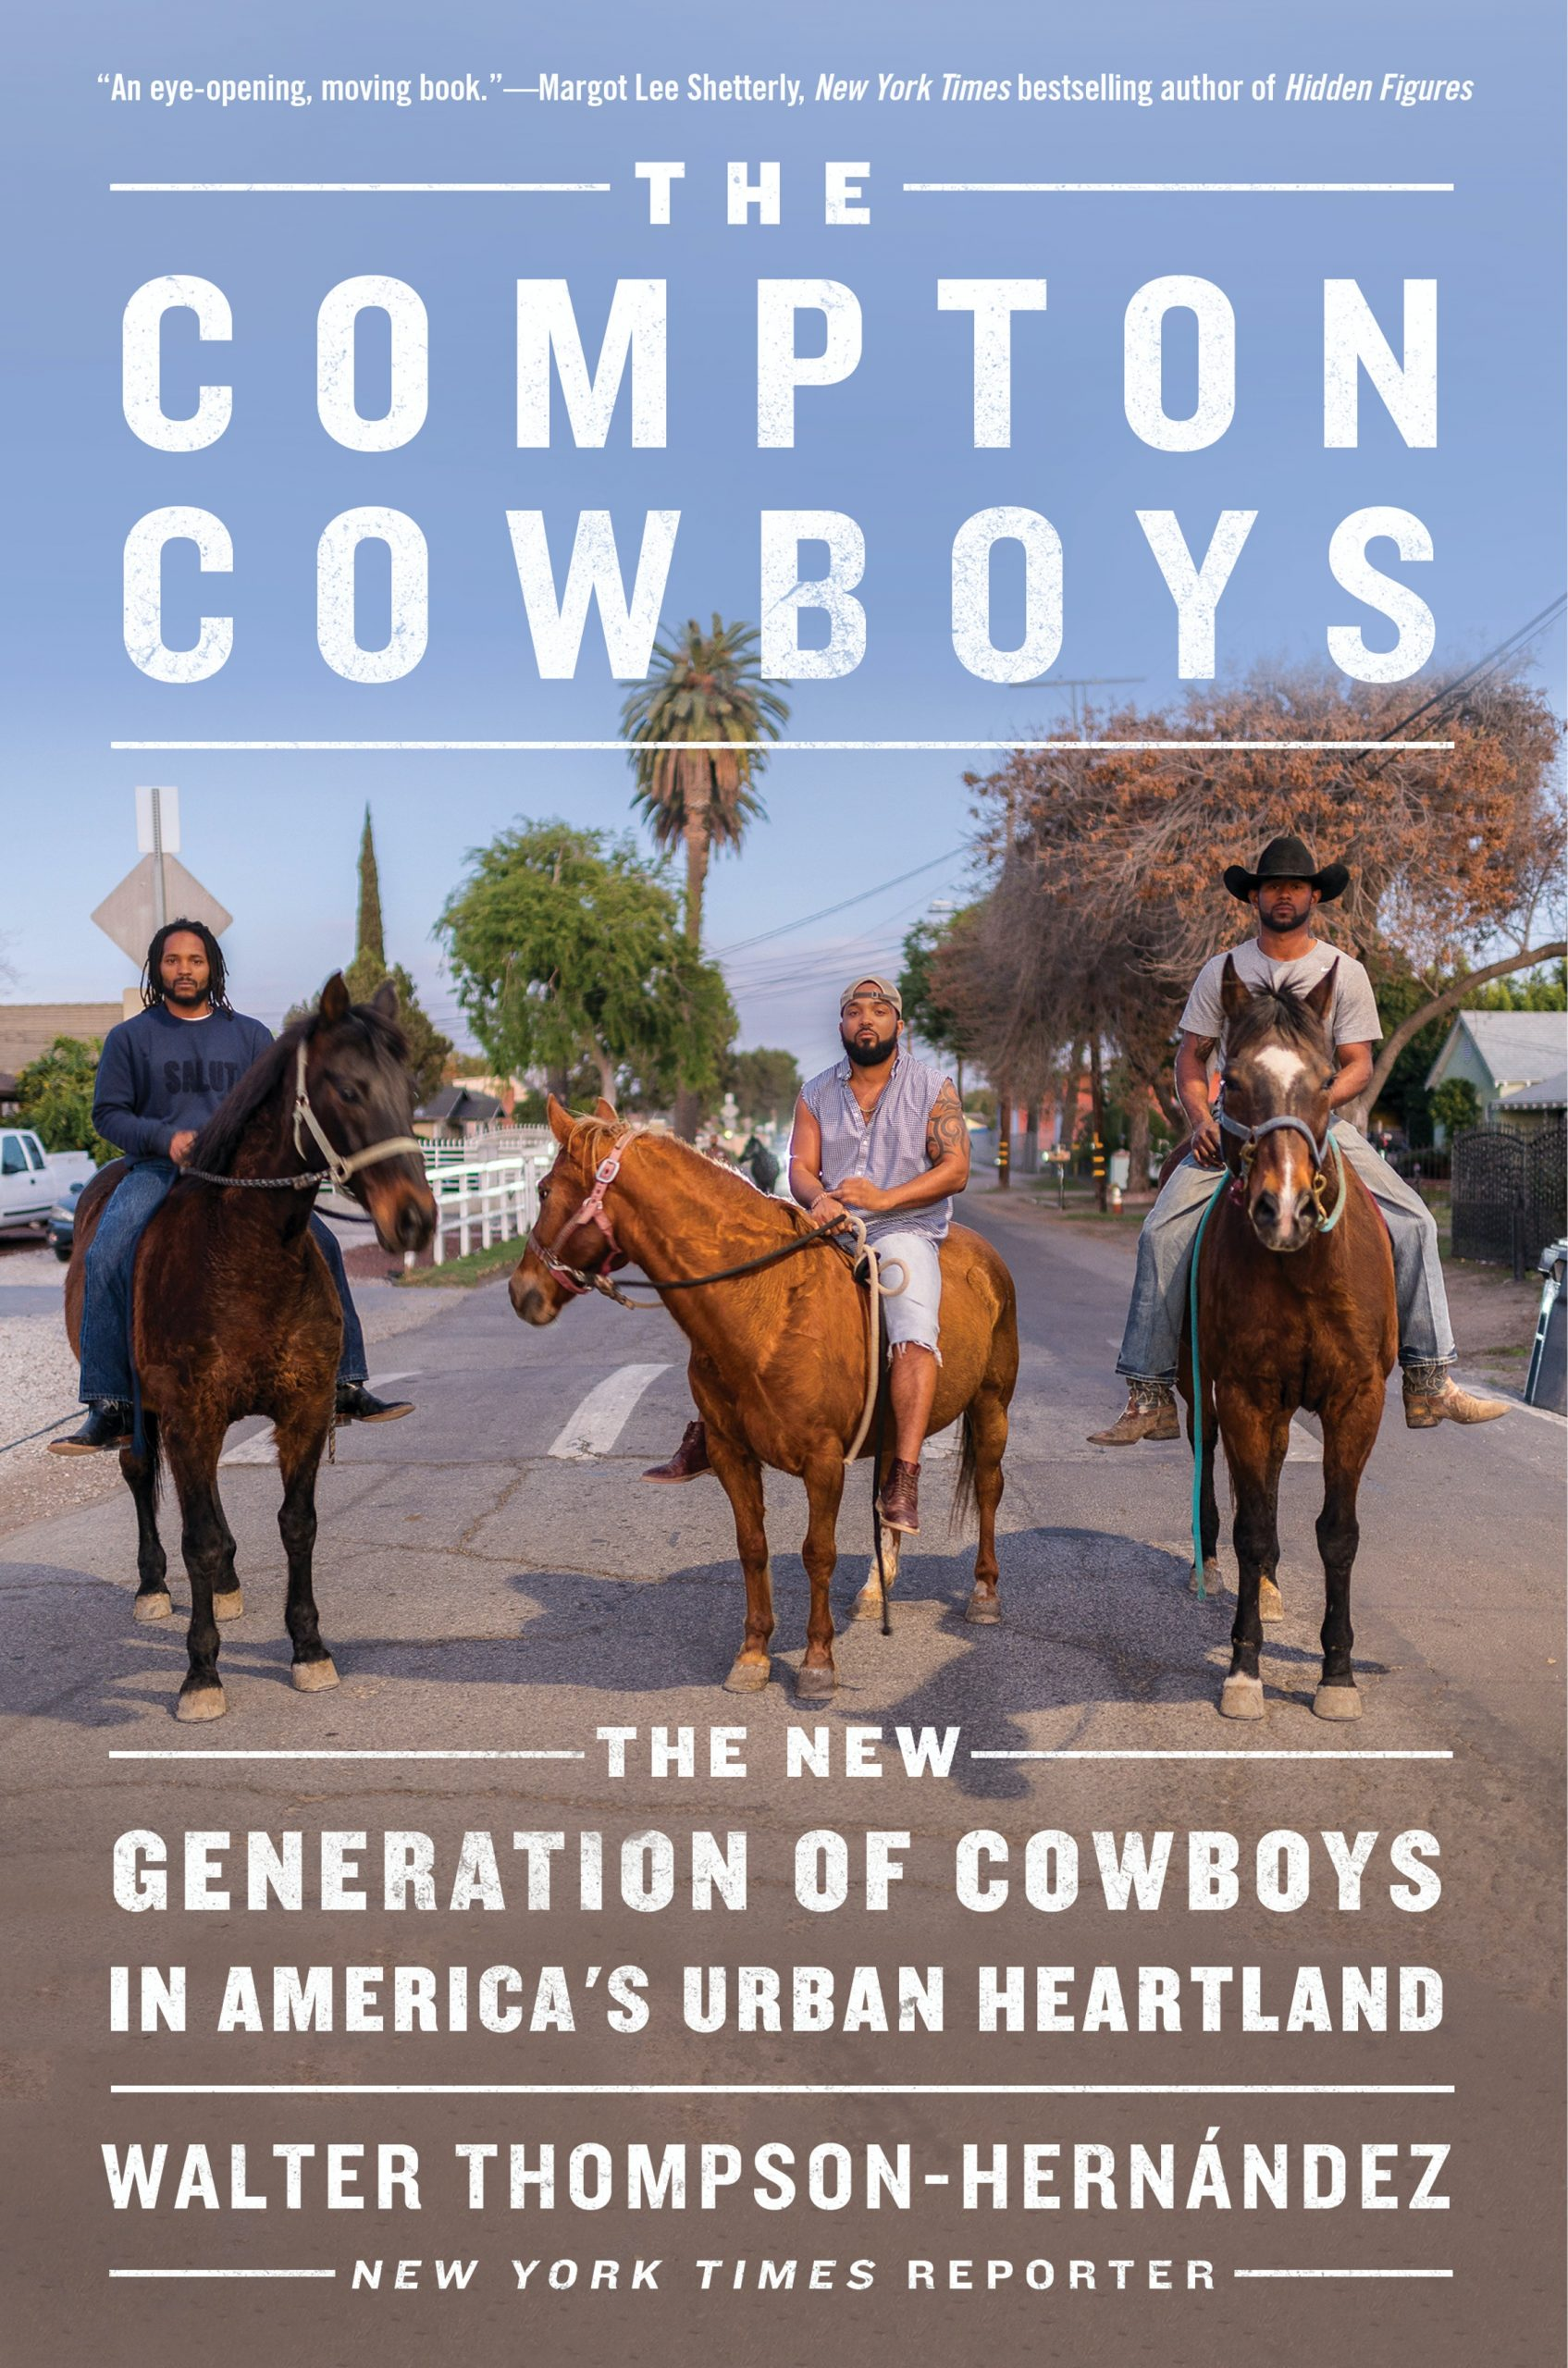 Cover art for Compton Cowboys: The New Generation of Cowboys in America's Urban Heartland by Walter Thompson-Hernández.